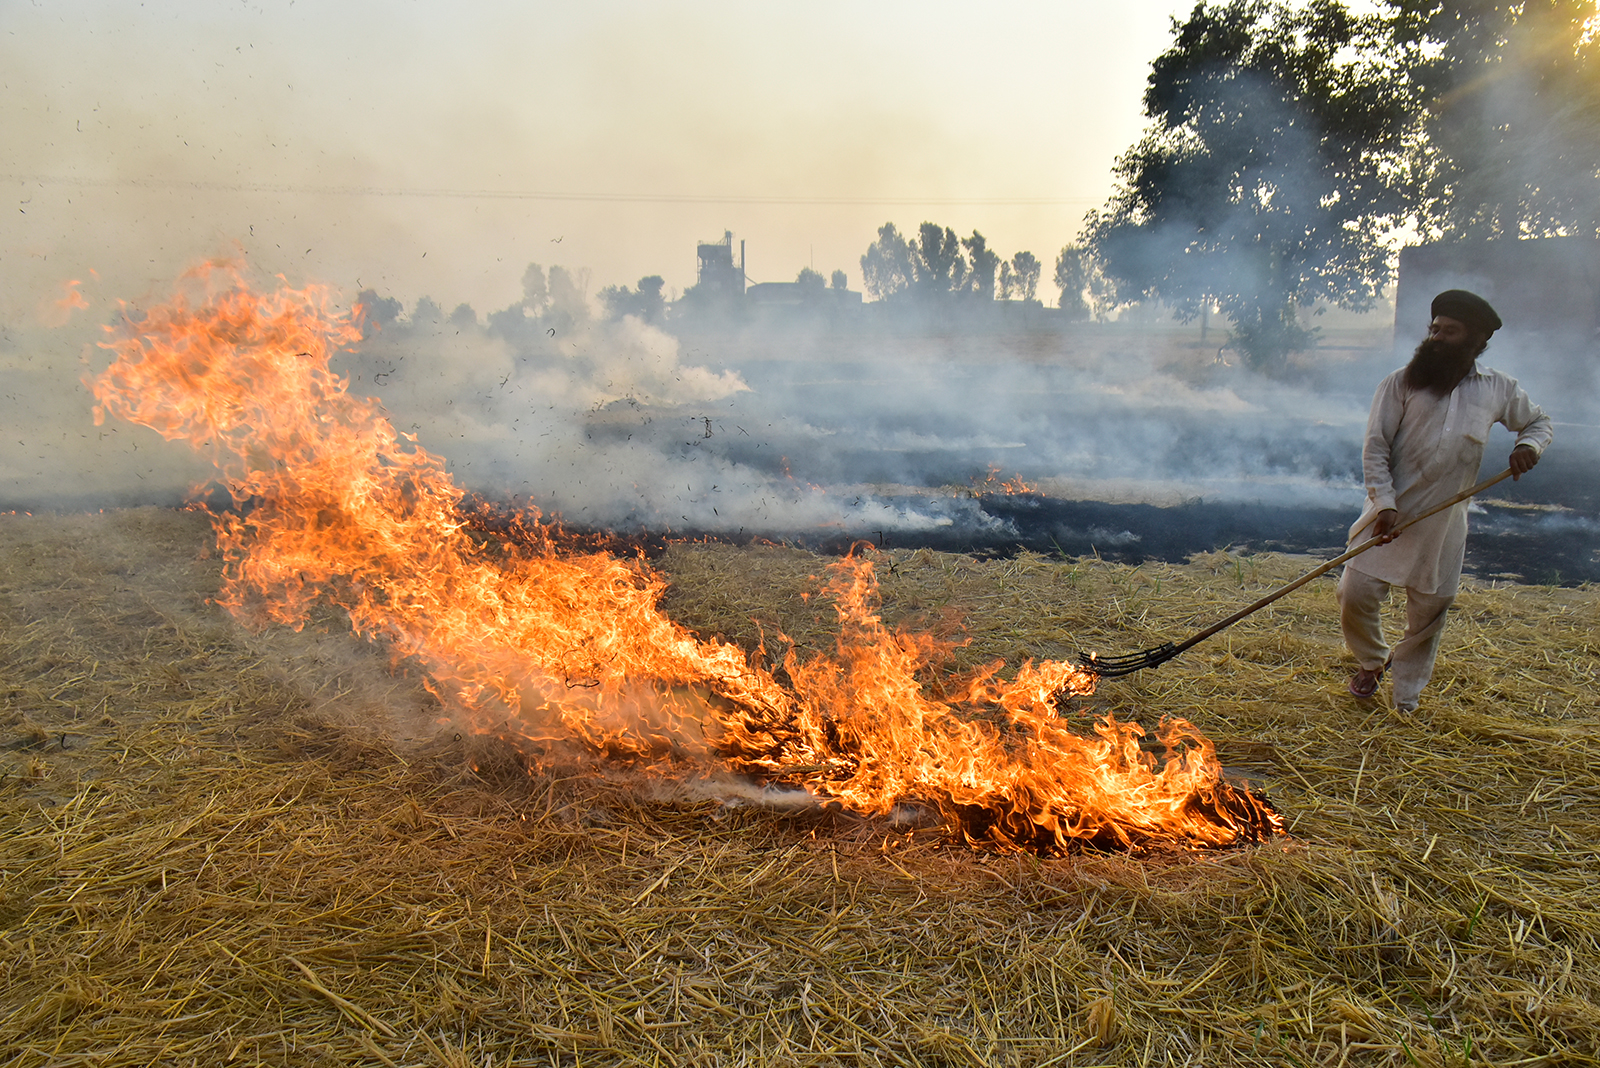 A farmer burns straw stubble in a field near Jandiala Guru in Amritsar, India, on October 16.